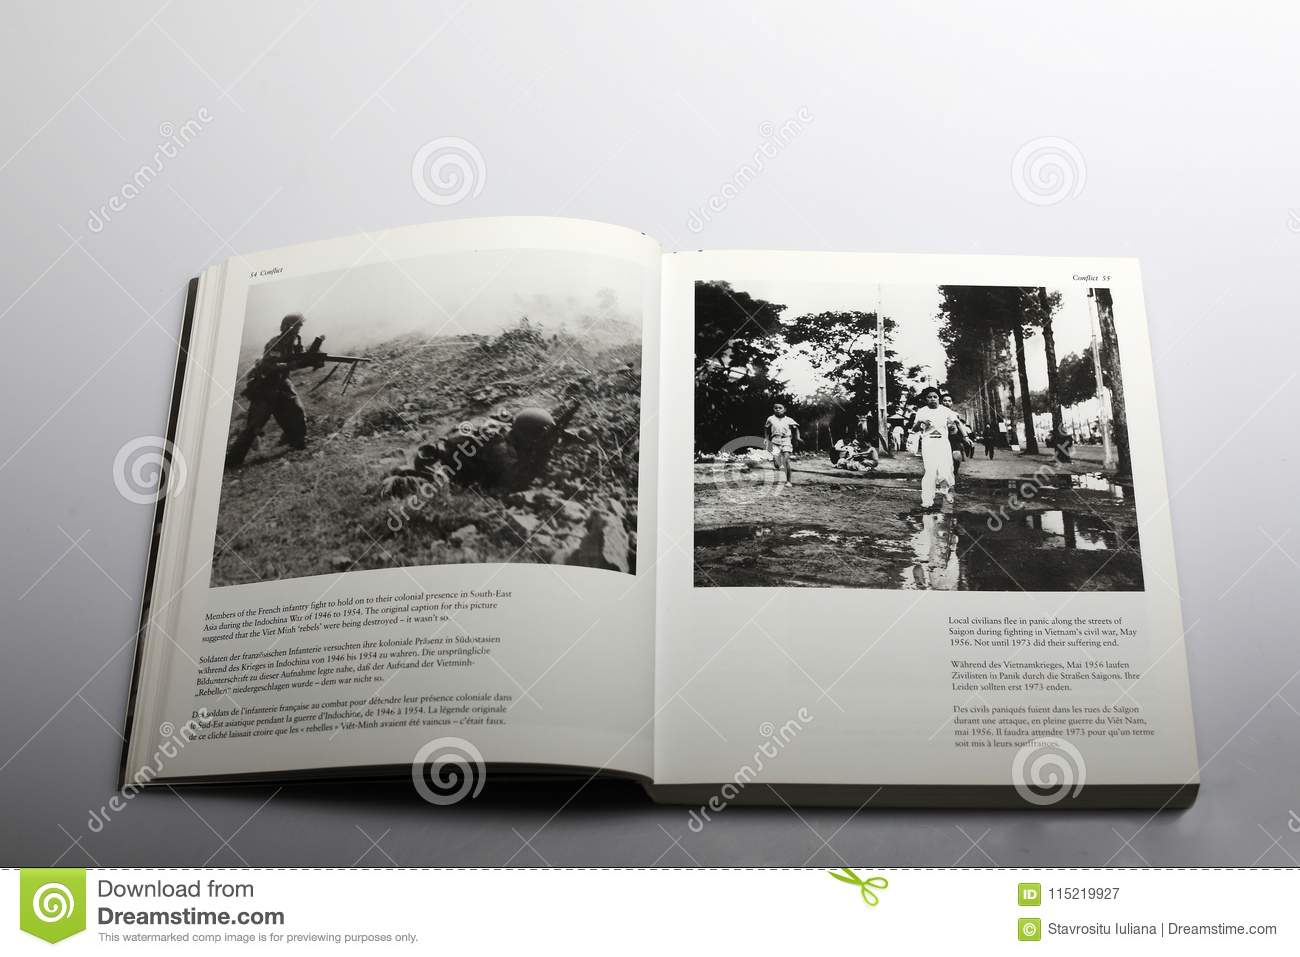 Fotografieboek door Nick Yapp, Franse infanterie in Indochina-Oorlog